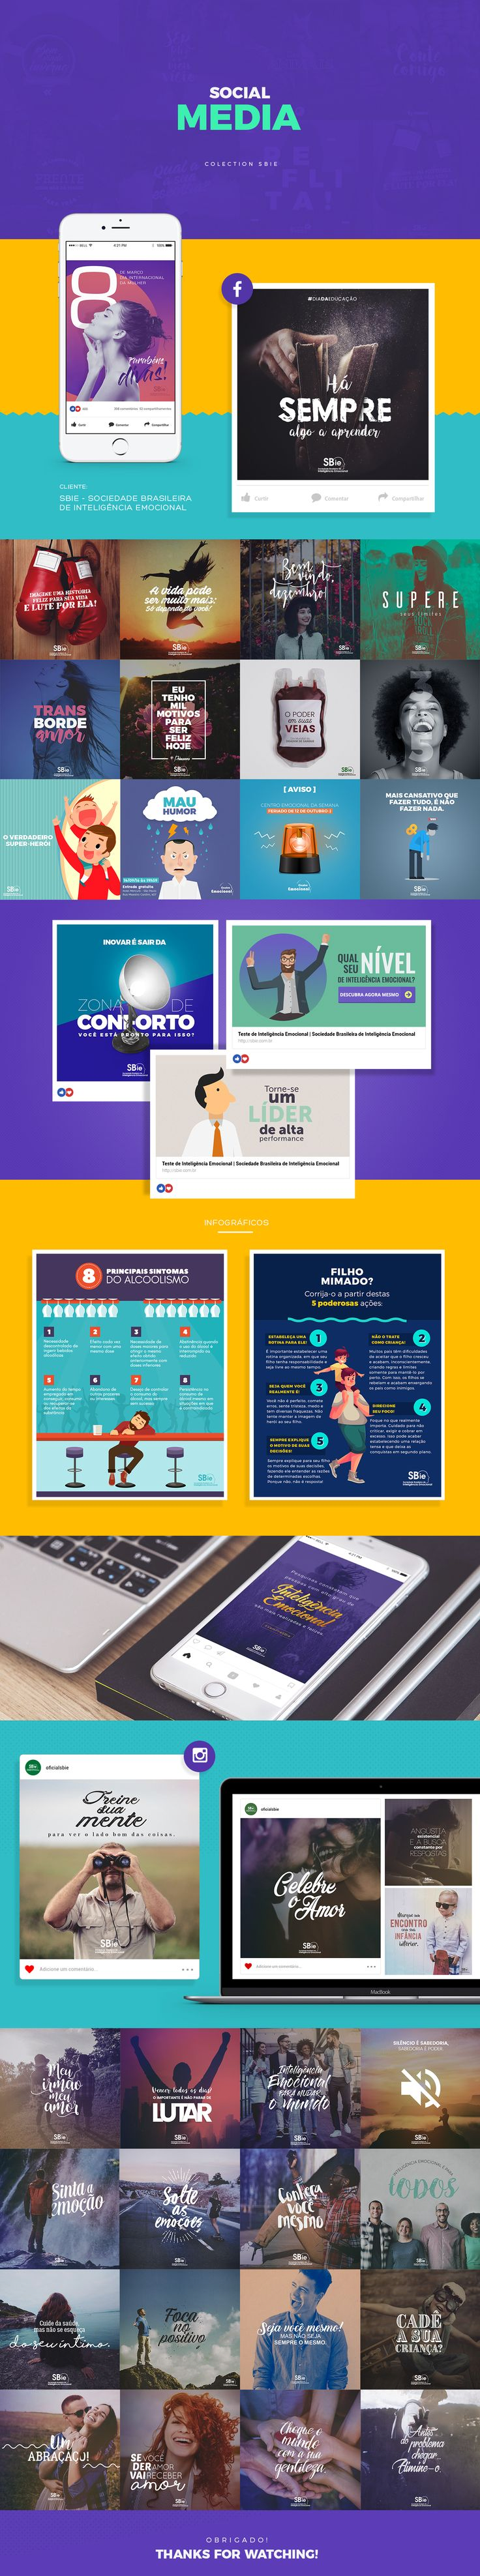 SBIE - Social Media Colection on Behance